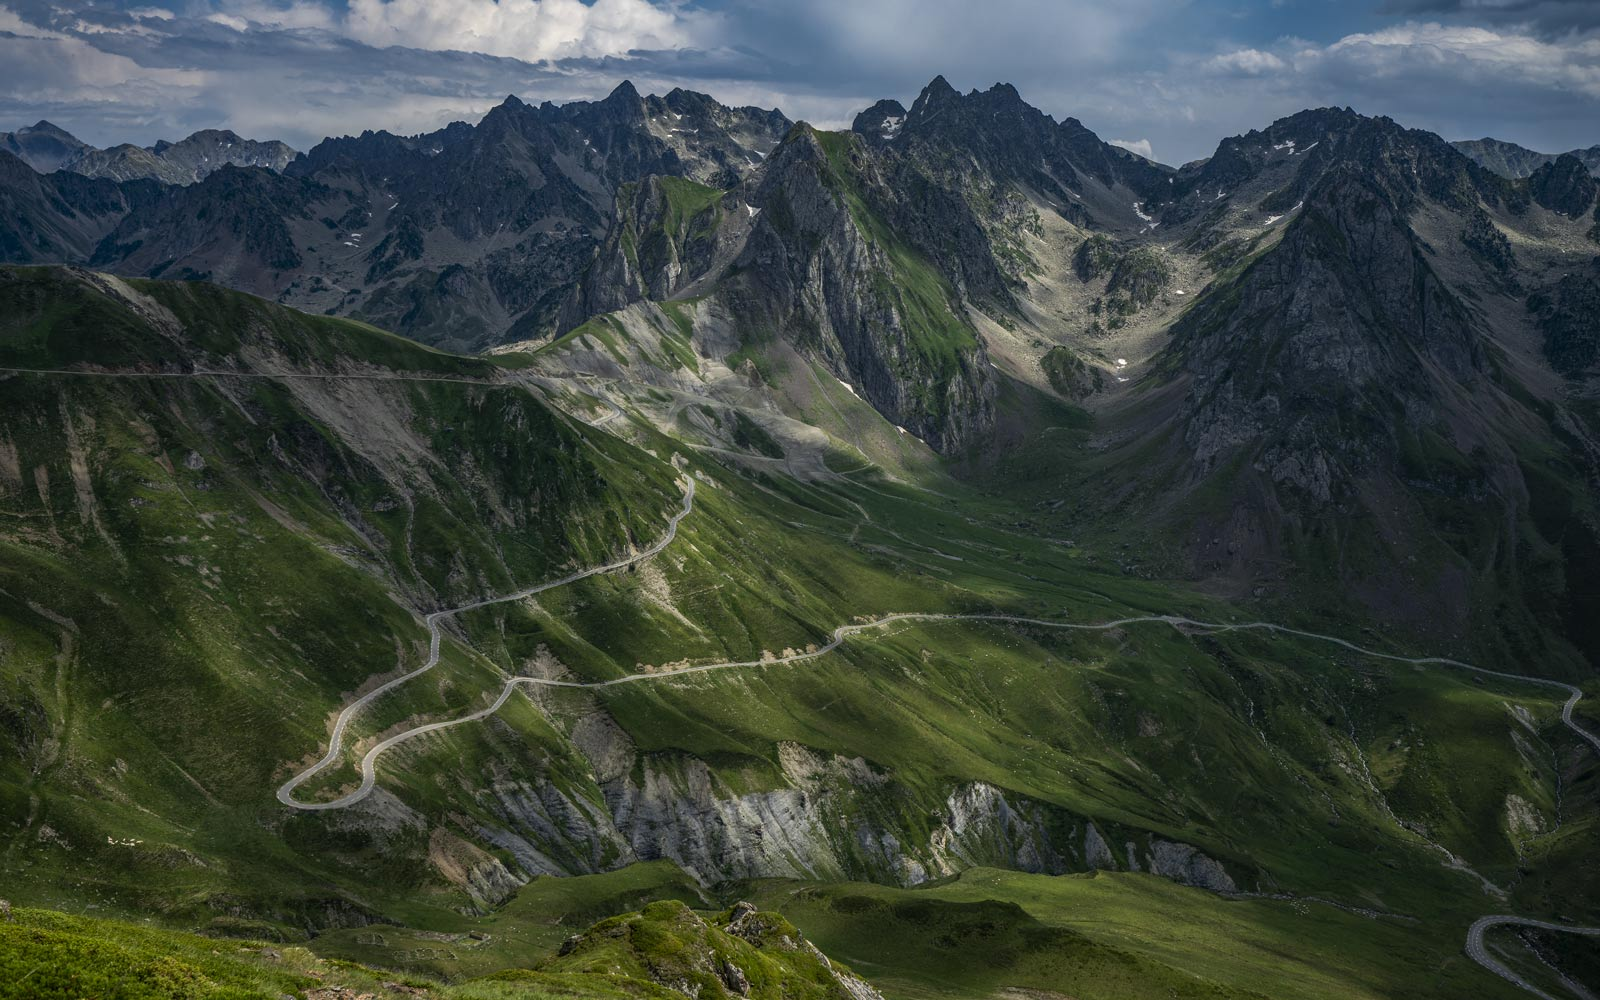 The Tourmalet - The Great Cycling Road Climbs - Gifts for cyclists by davidt